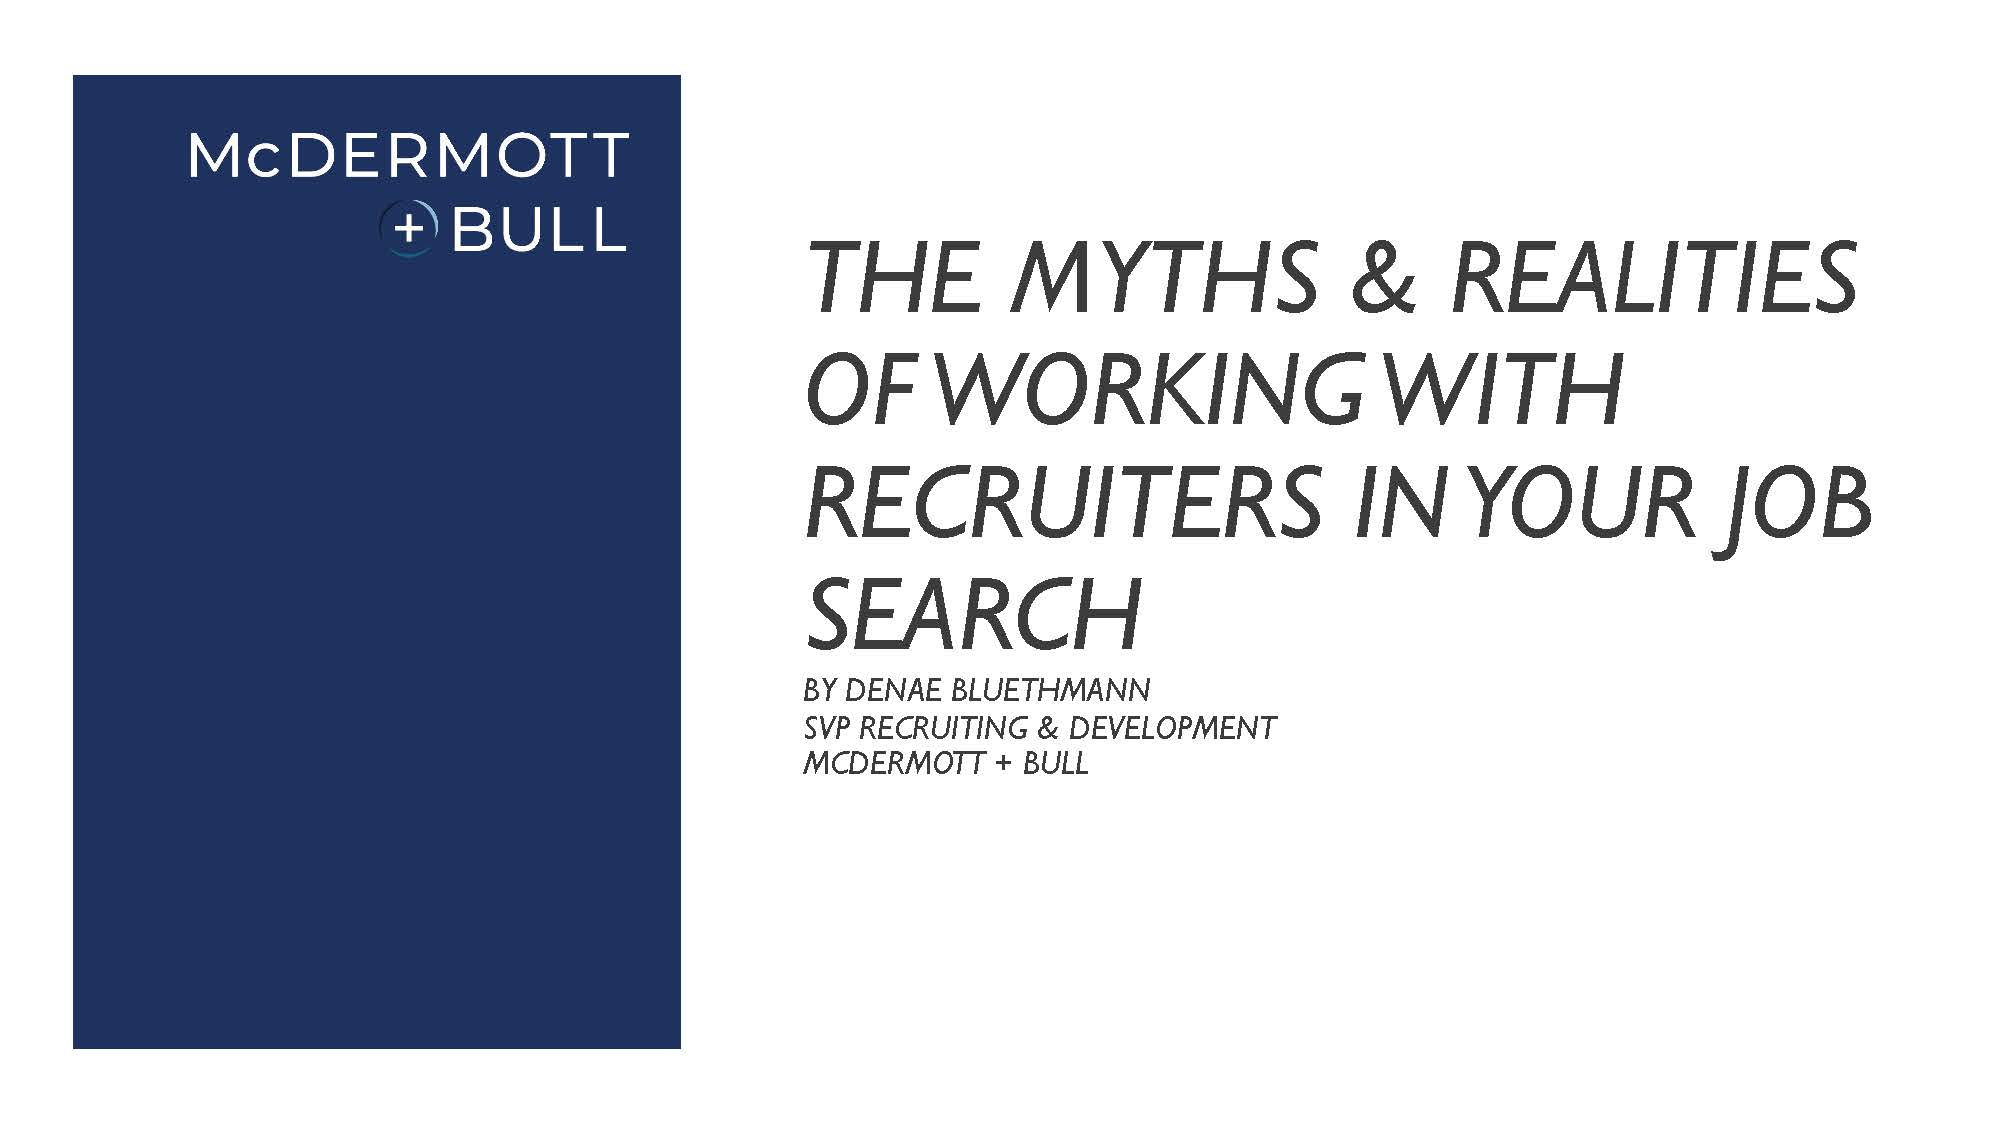 The Myths + Realities of Working With Recruiters in Your Job Search